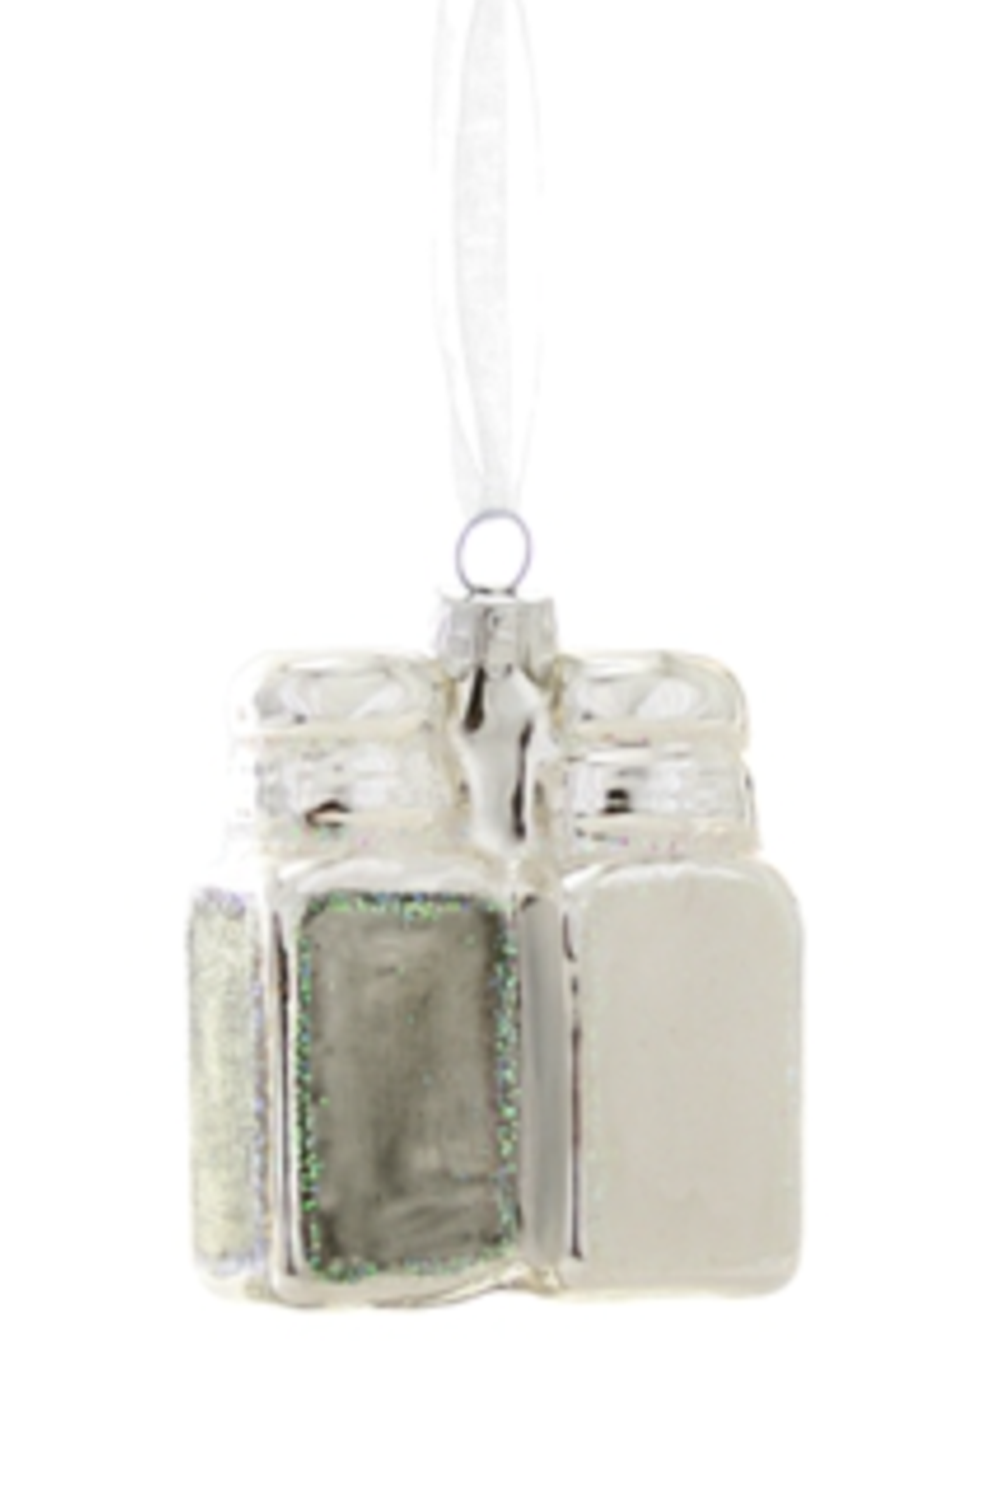 Glass Ornament - Salt & Pepper Shaker